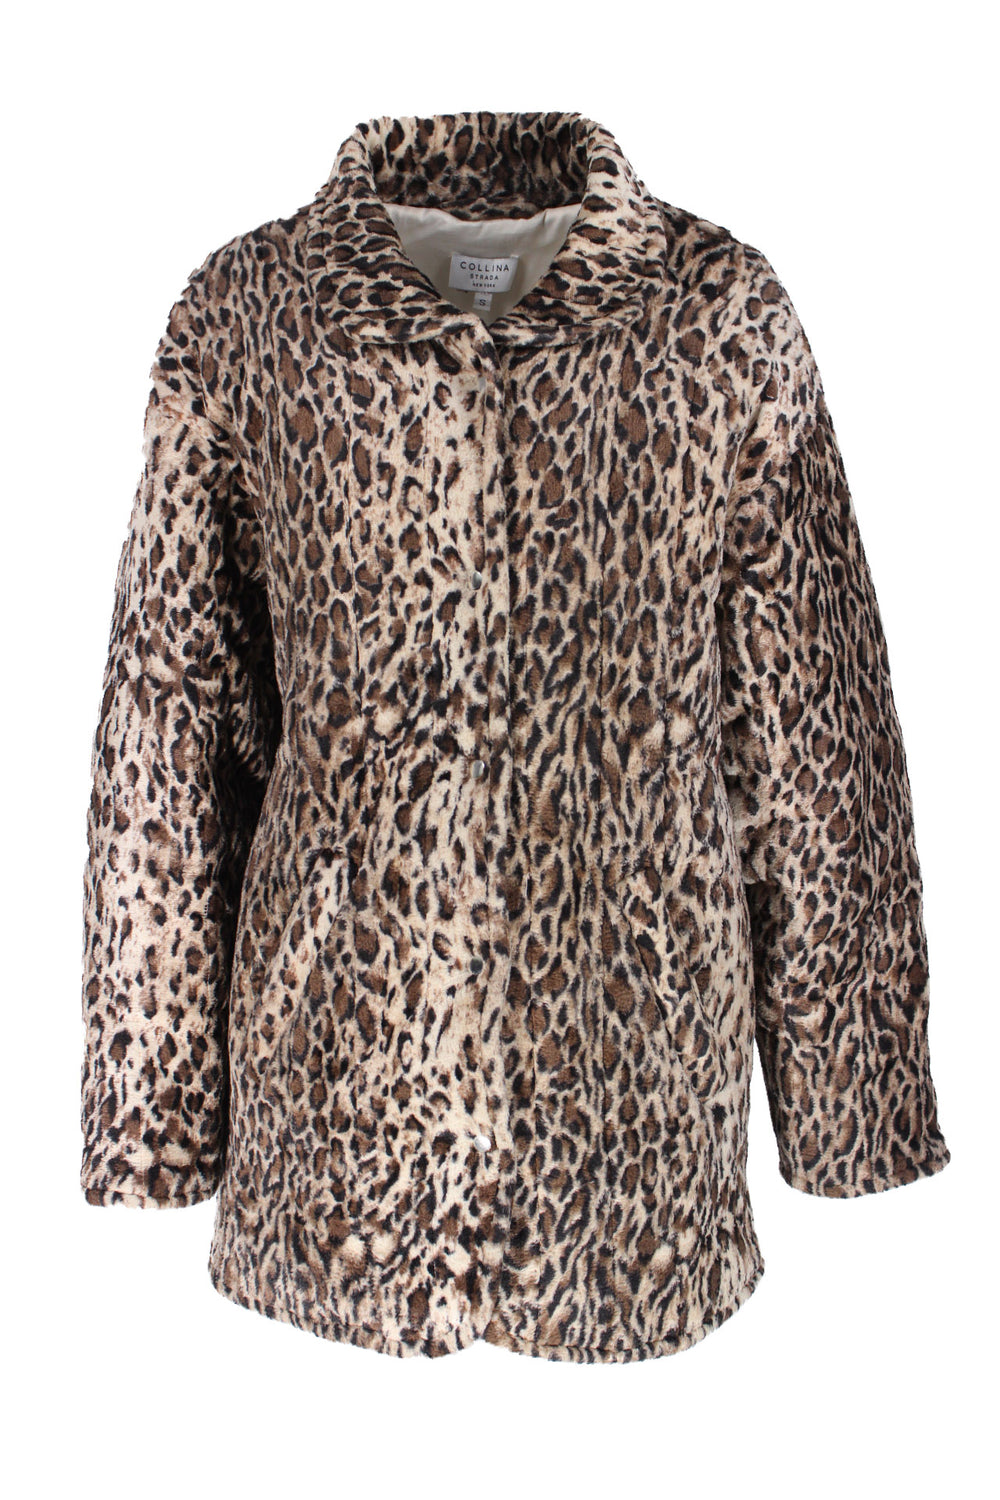 "colina strada leopard print faux fur jacket. featuring snap-down front closure and side pockets. sold in ""as is"" condition, see condition notes and photos."